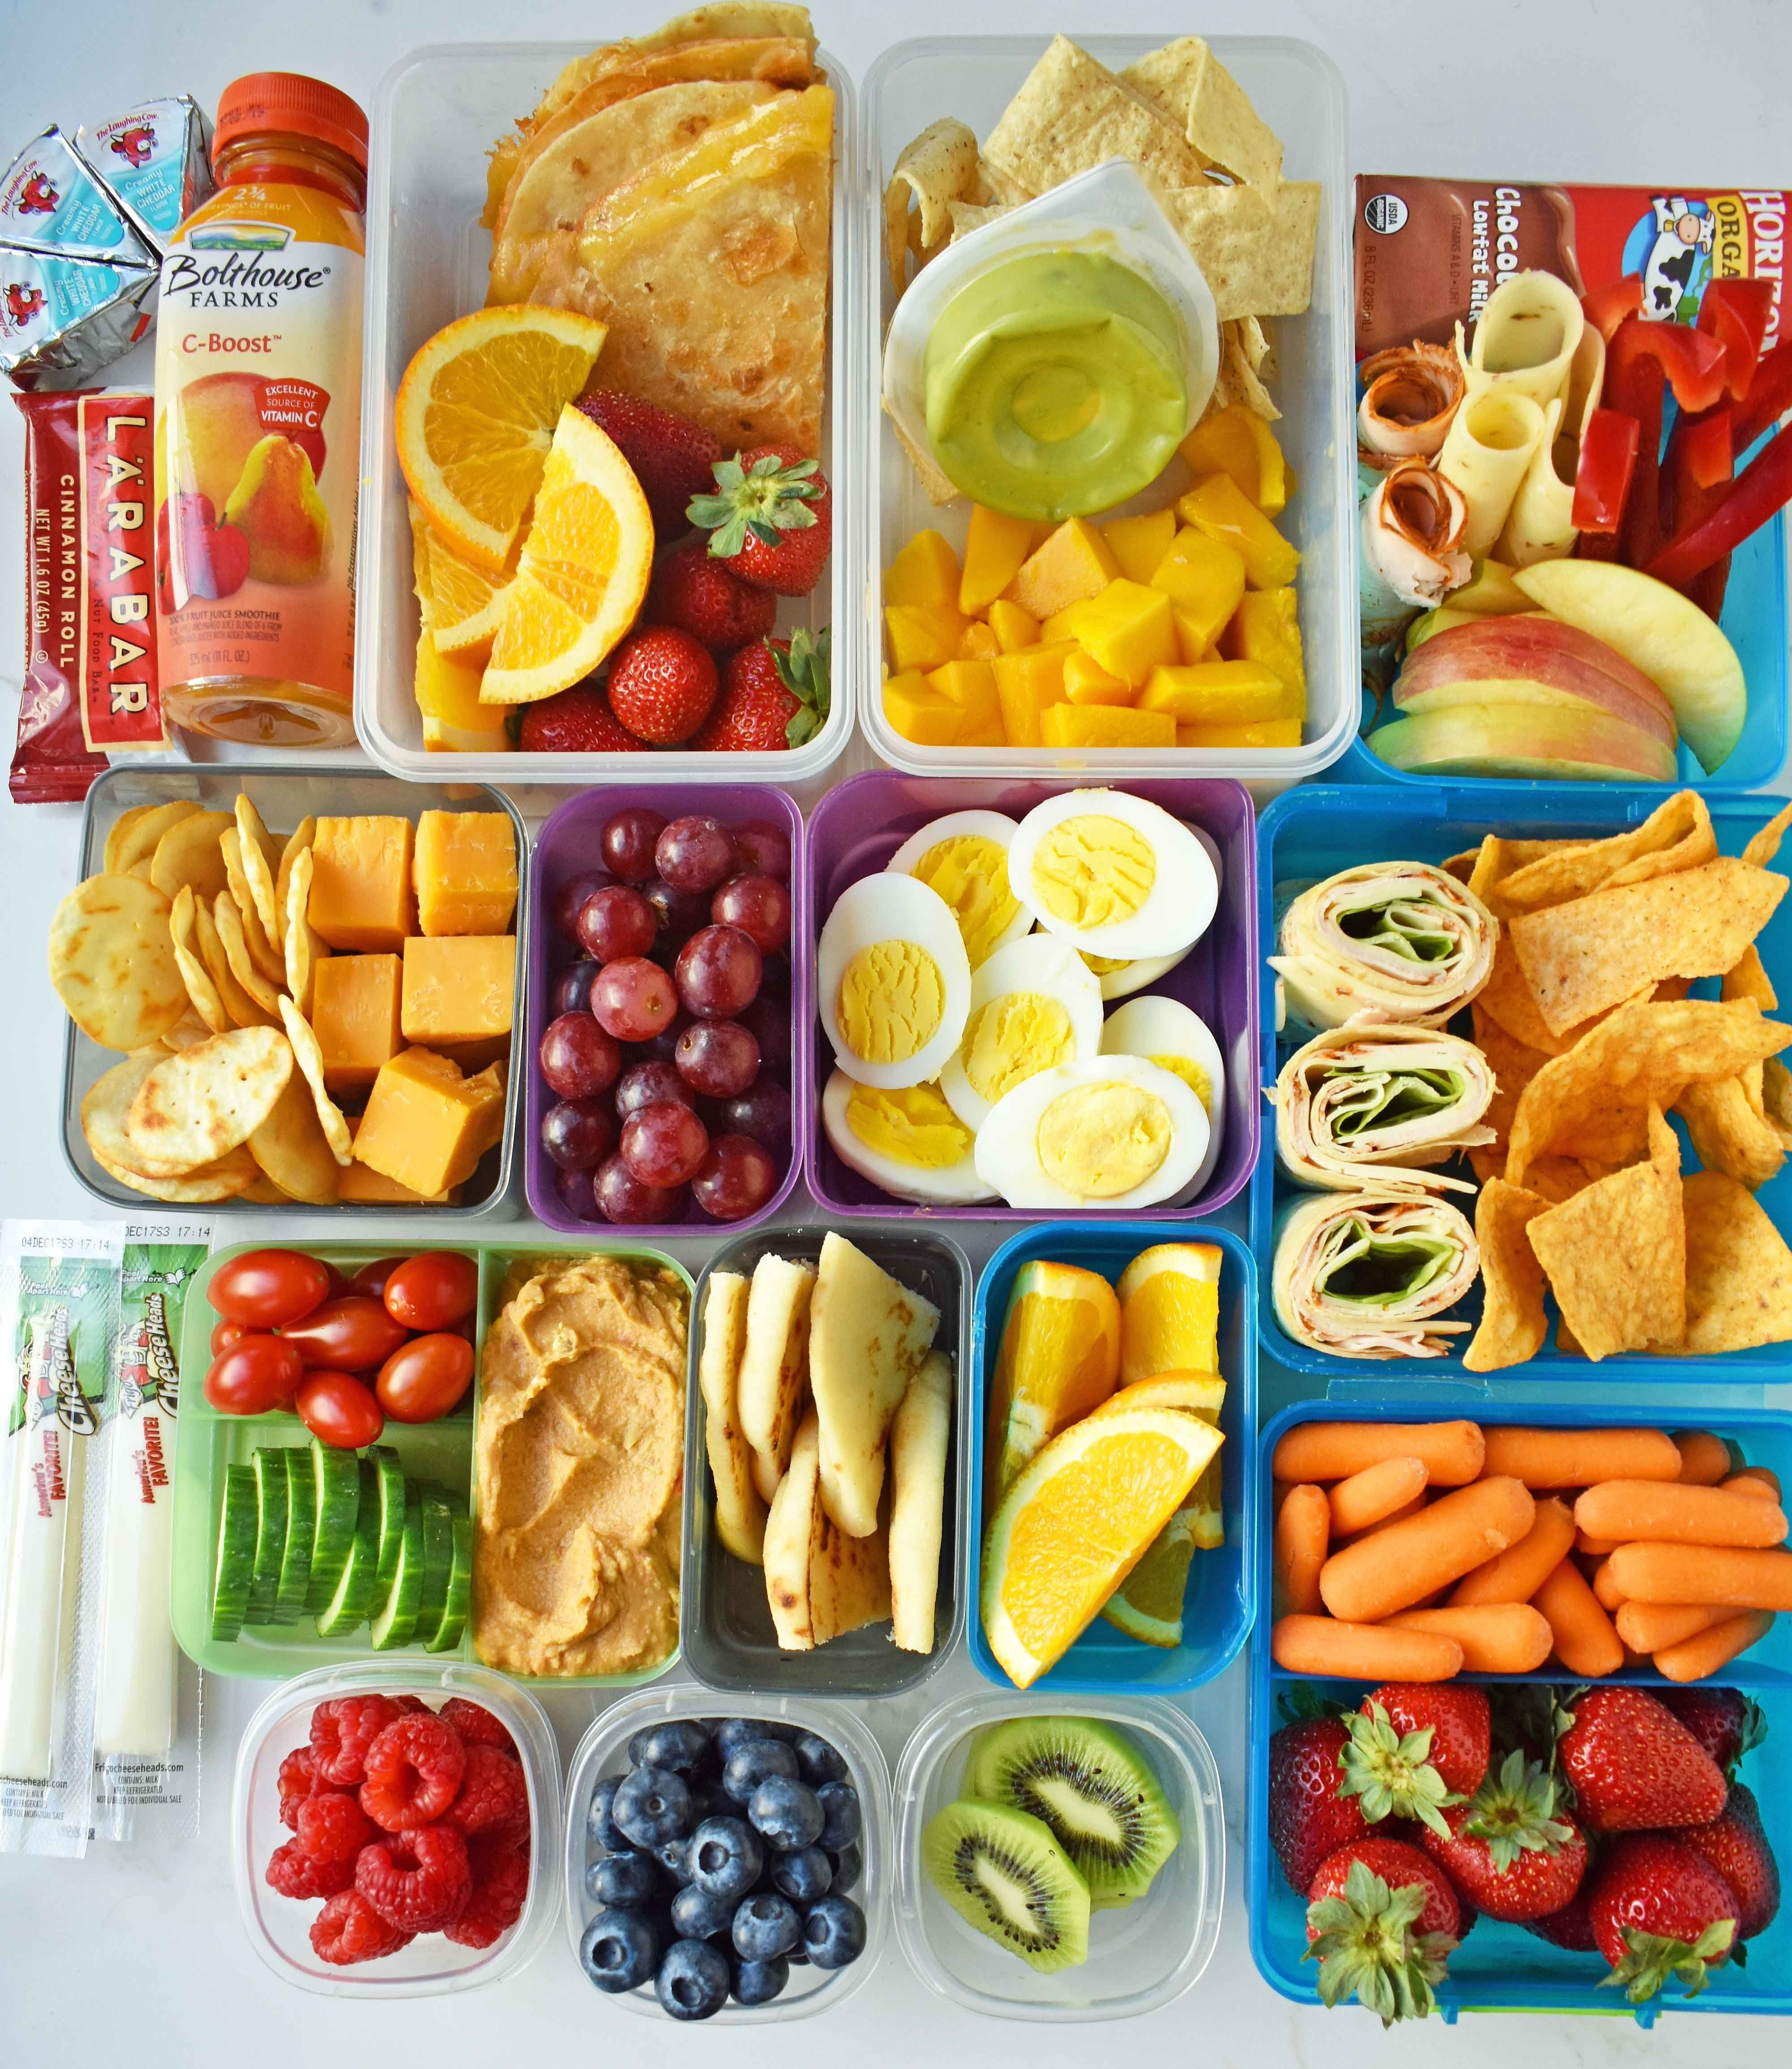 10 Trendy Good Ideas For School Lunches back to school kids lunch ideas modern honey 2 2021